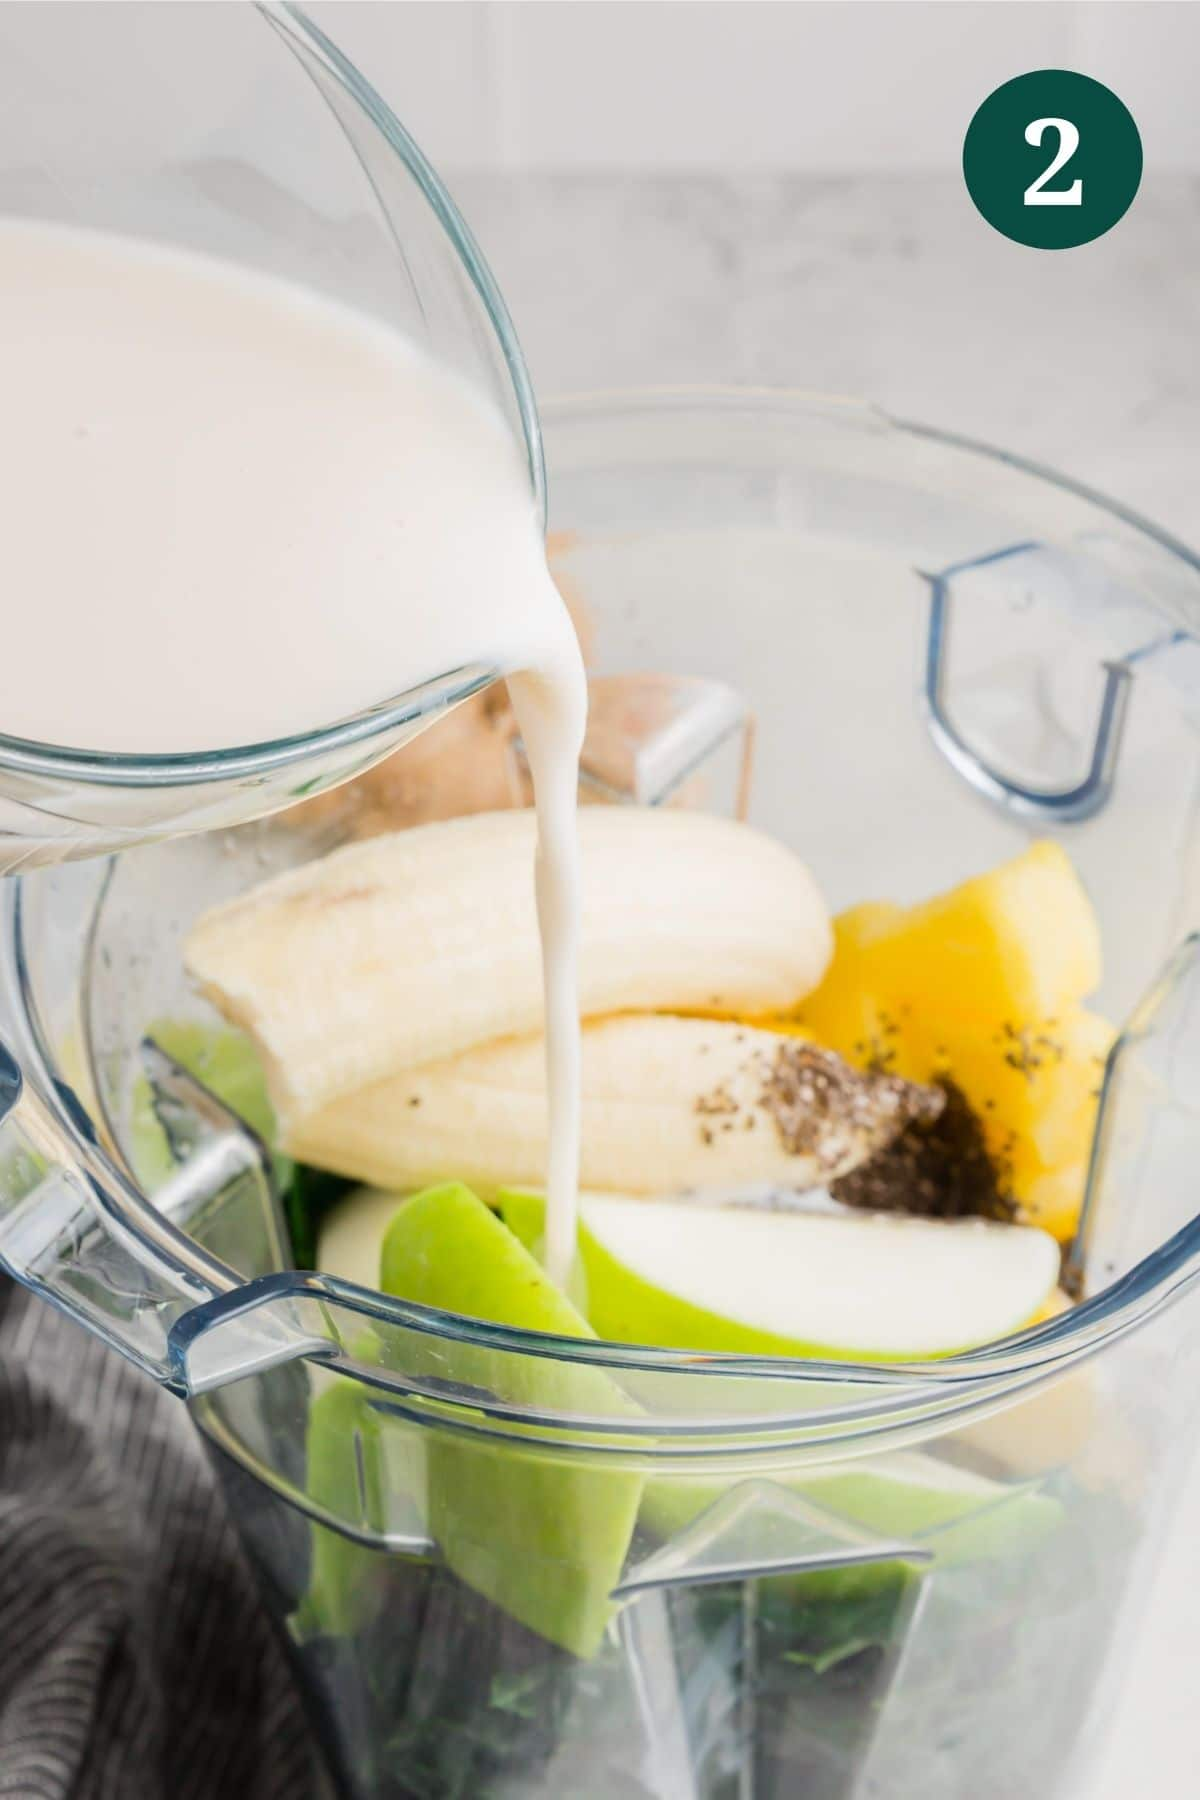 Almond milk being poured into a blend with apple, banana, pineapple and kale.